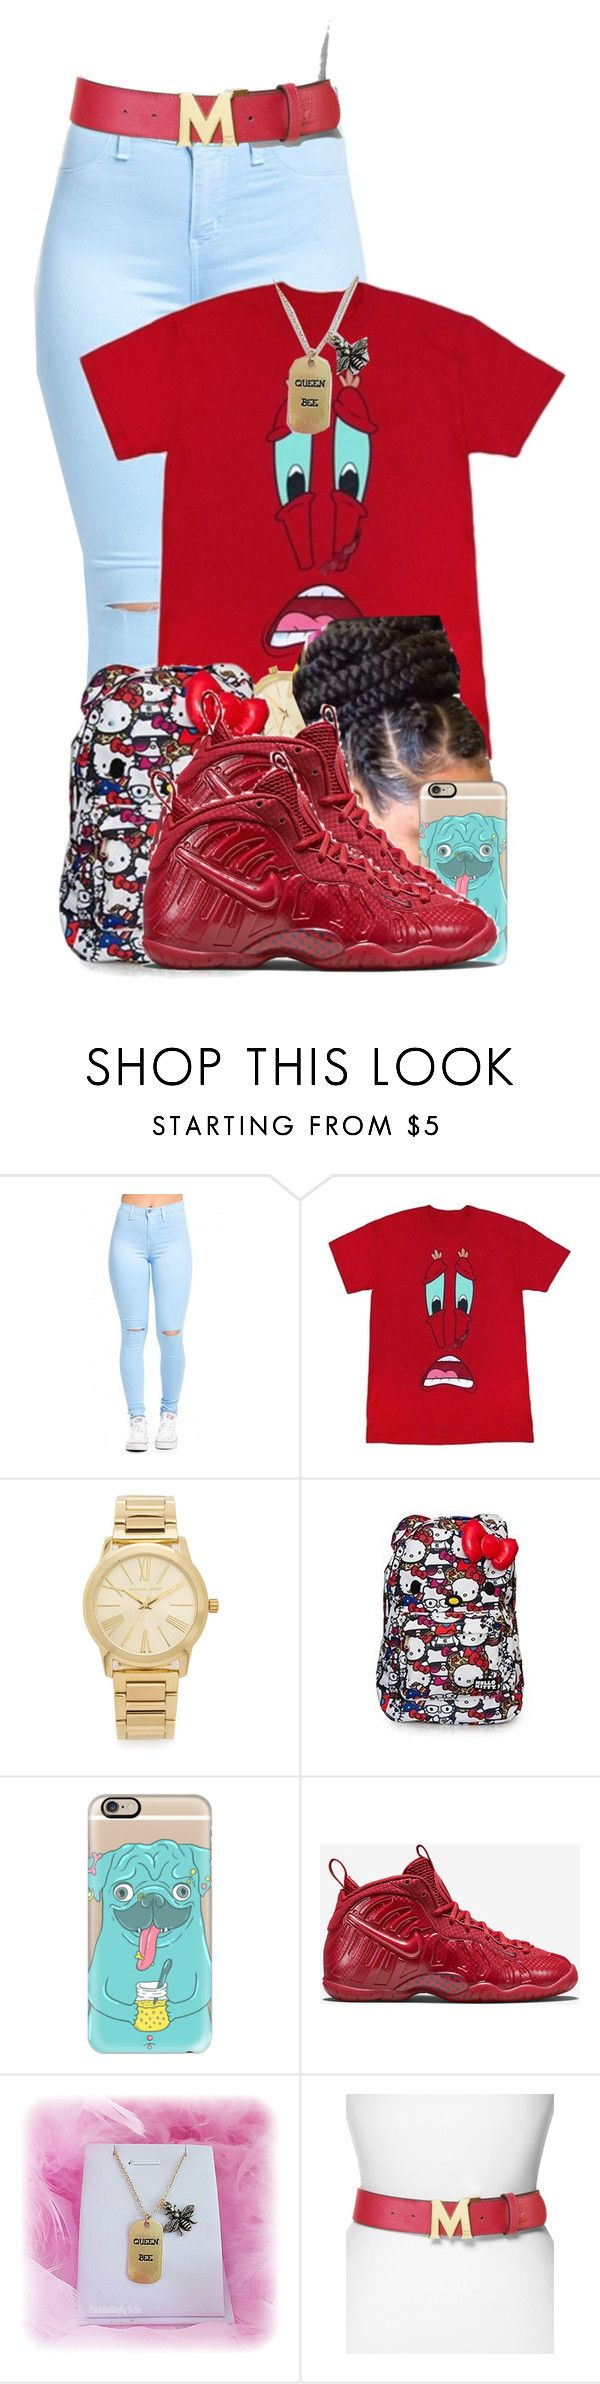 """""""Big Timers ✌"""" by aniahrhichkhidd ❤ liked on Polyvore featuring Michael Kors, Casetify, NIKE, Queen Bee, MCM, men's fashion and menswear"""